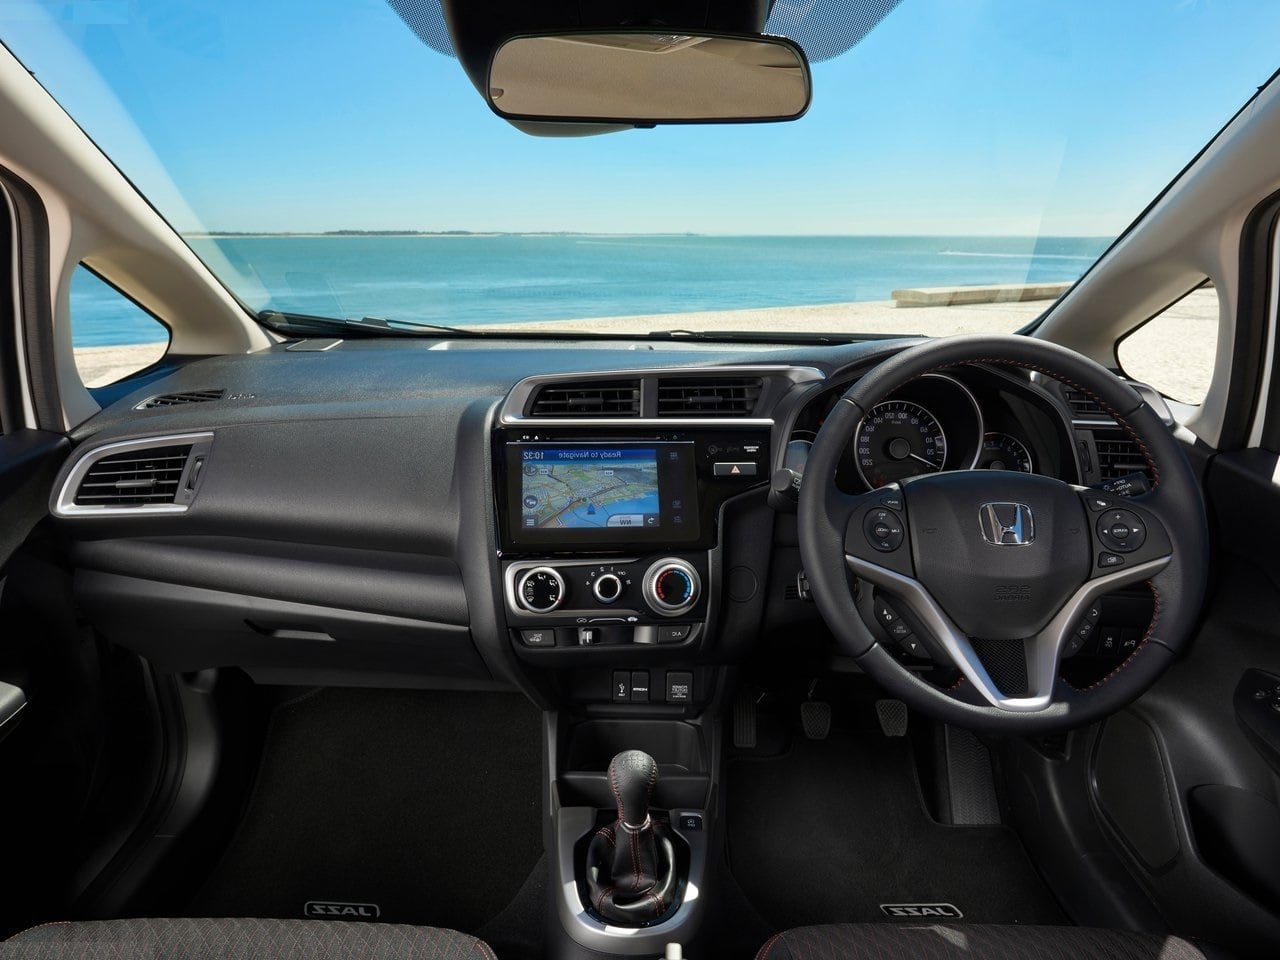 2018 honda jazz facelift images interior dashboard 1 carblogindia. Black Bedroom Furniture Sets. Home Design Ideas